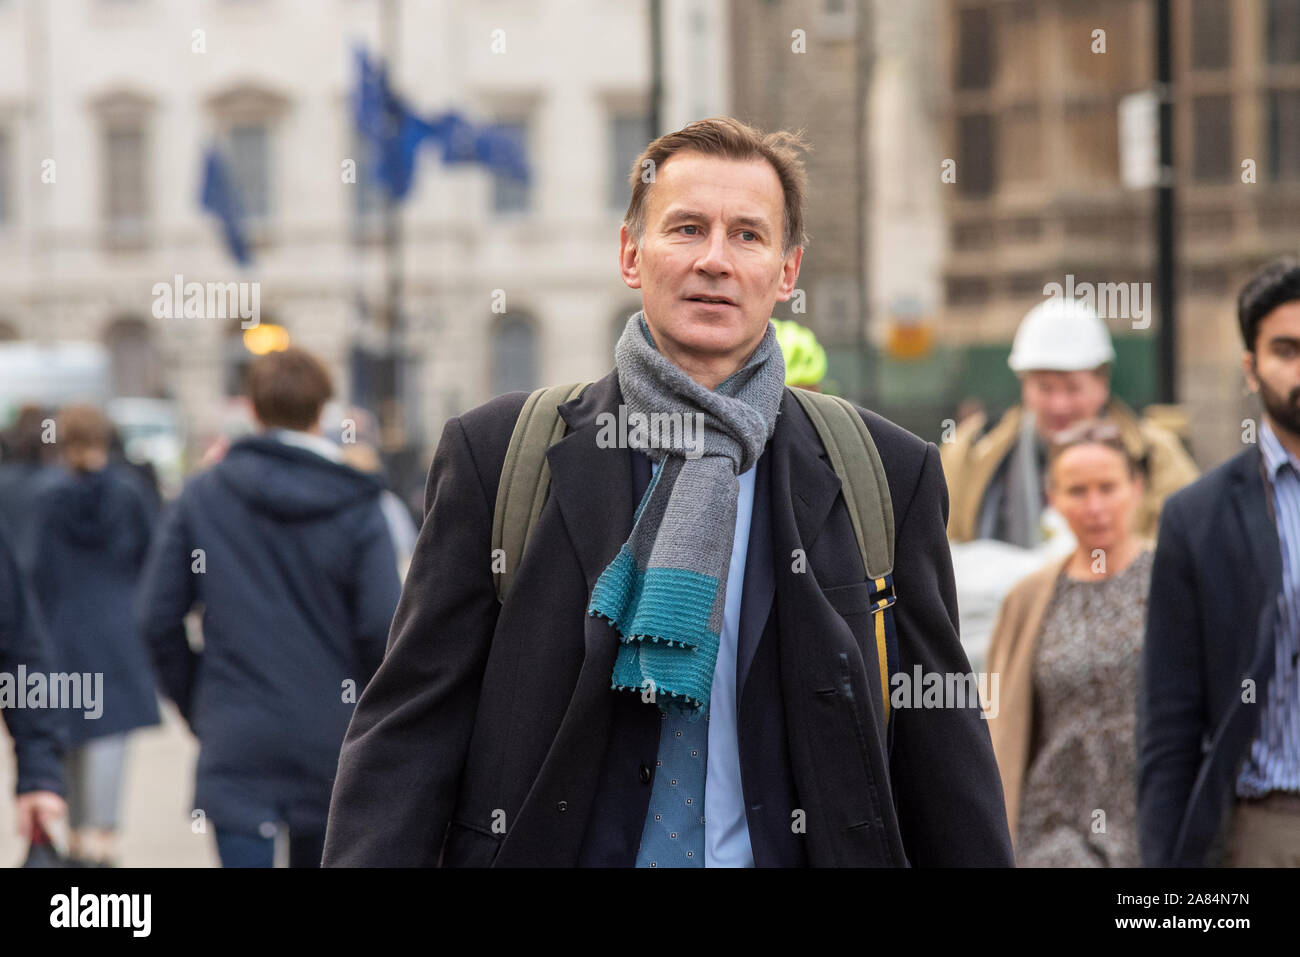 jeremy-hunt-mp-arriving-at-house-of-commons-for-their-last-day-of-debates-before-parliament-is-dissolved-in-preparation-for-the-general-election-2A84N7N.jpg